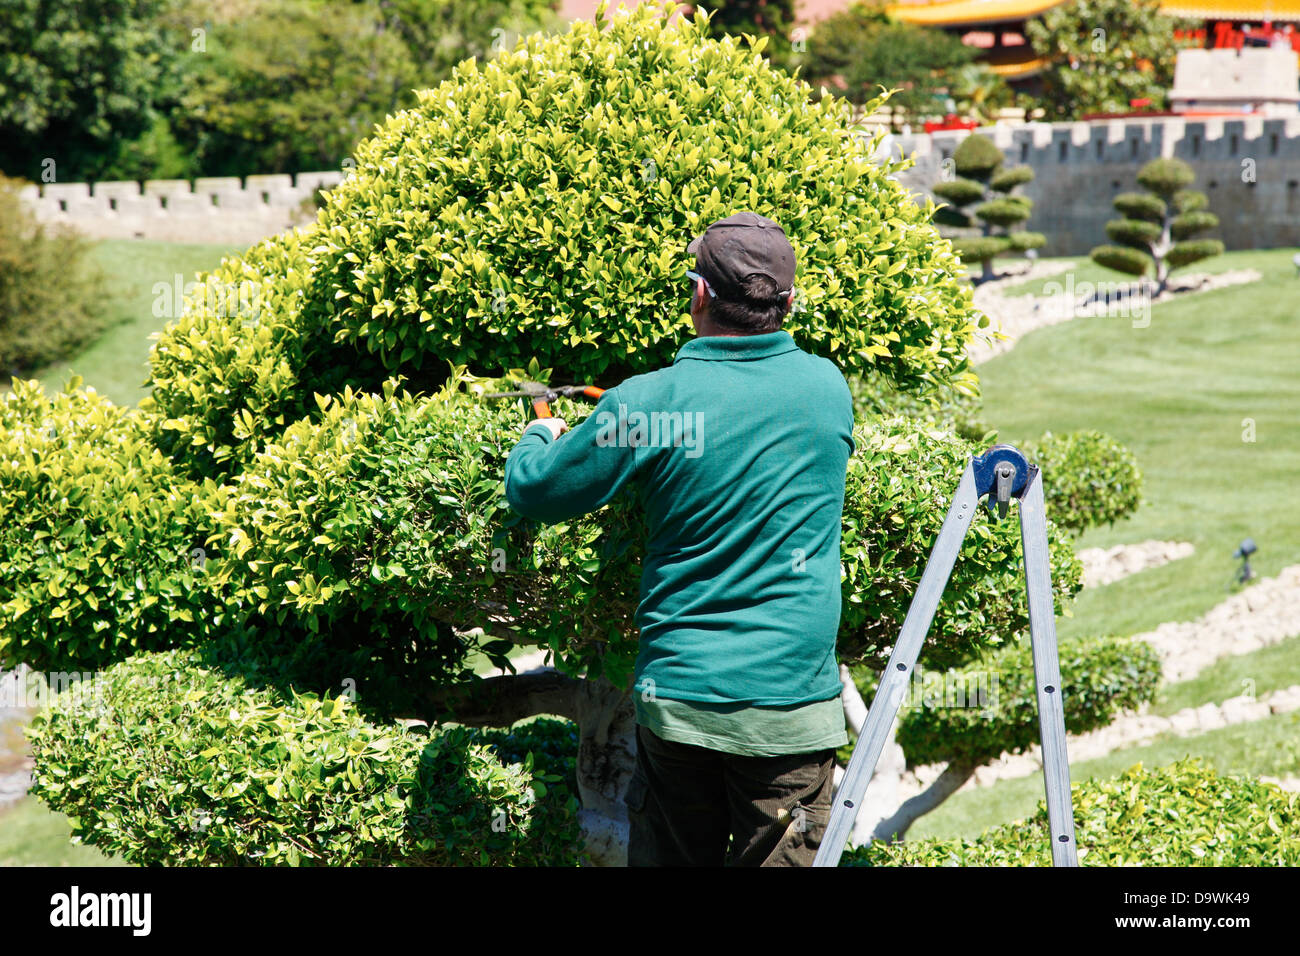 gardener gardening salou, catalonia, spain - Stock Image